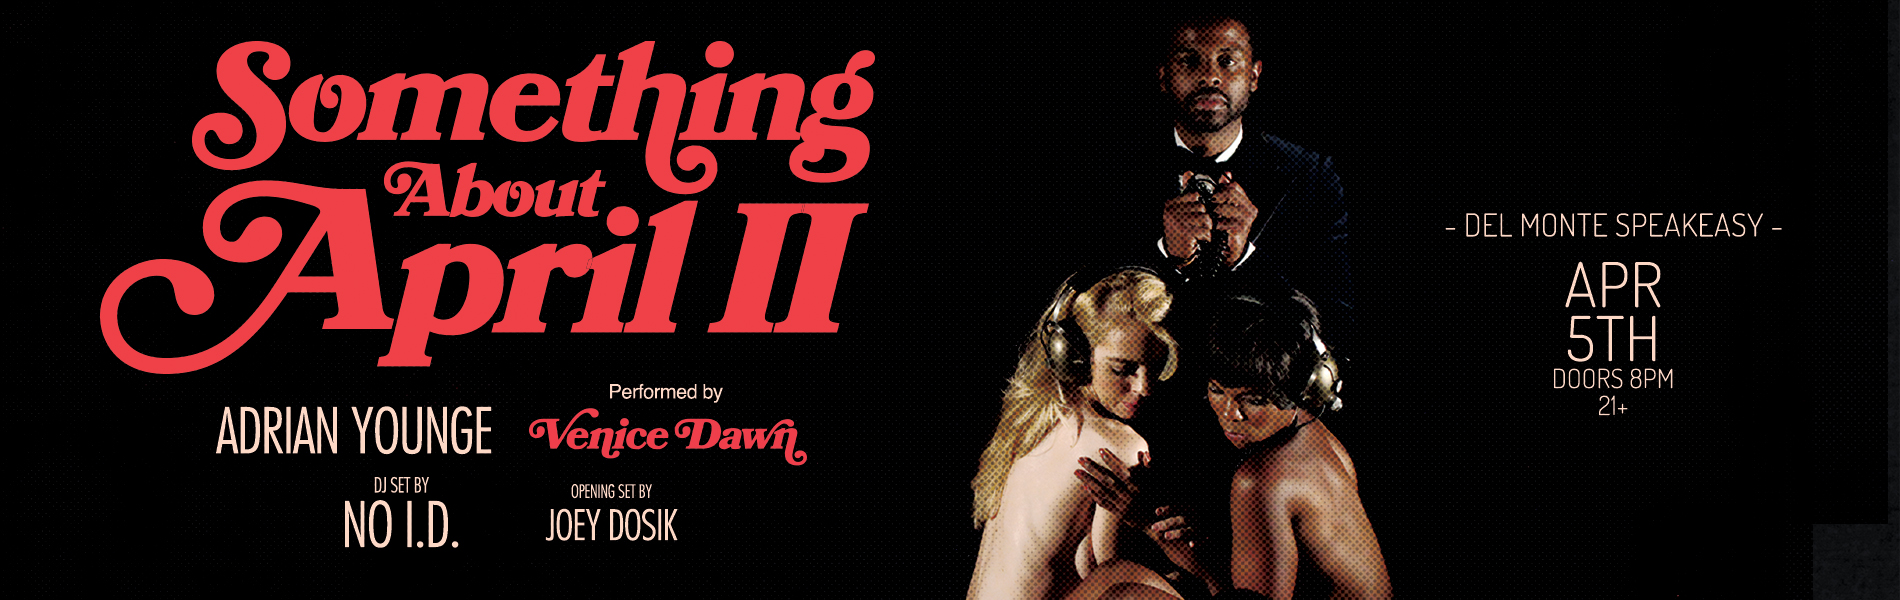 Adrian Younge Art Dont Sleep 1900x600